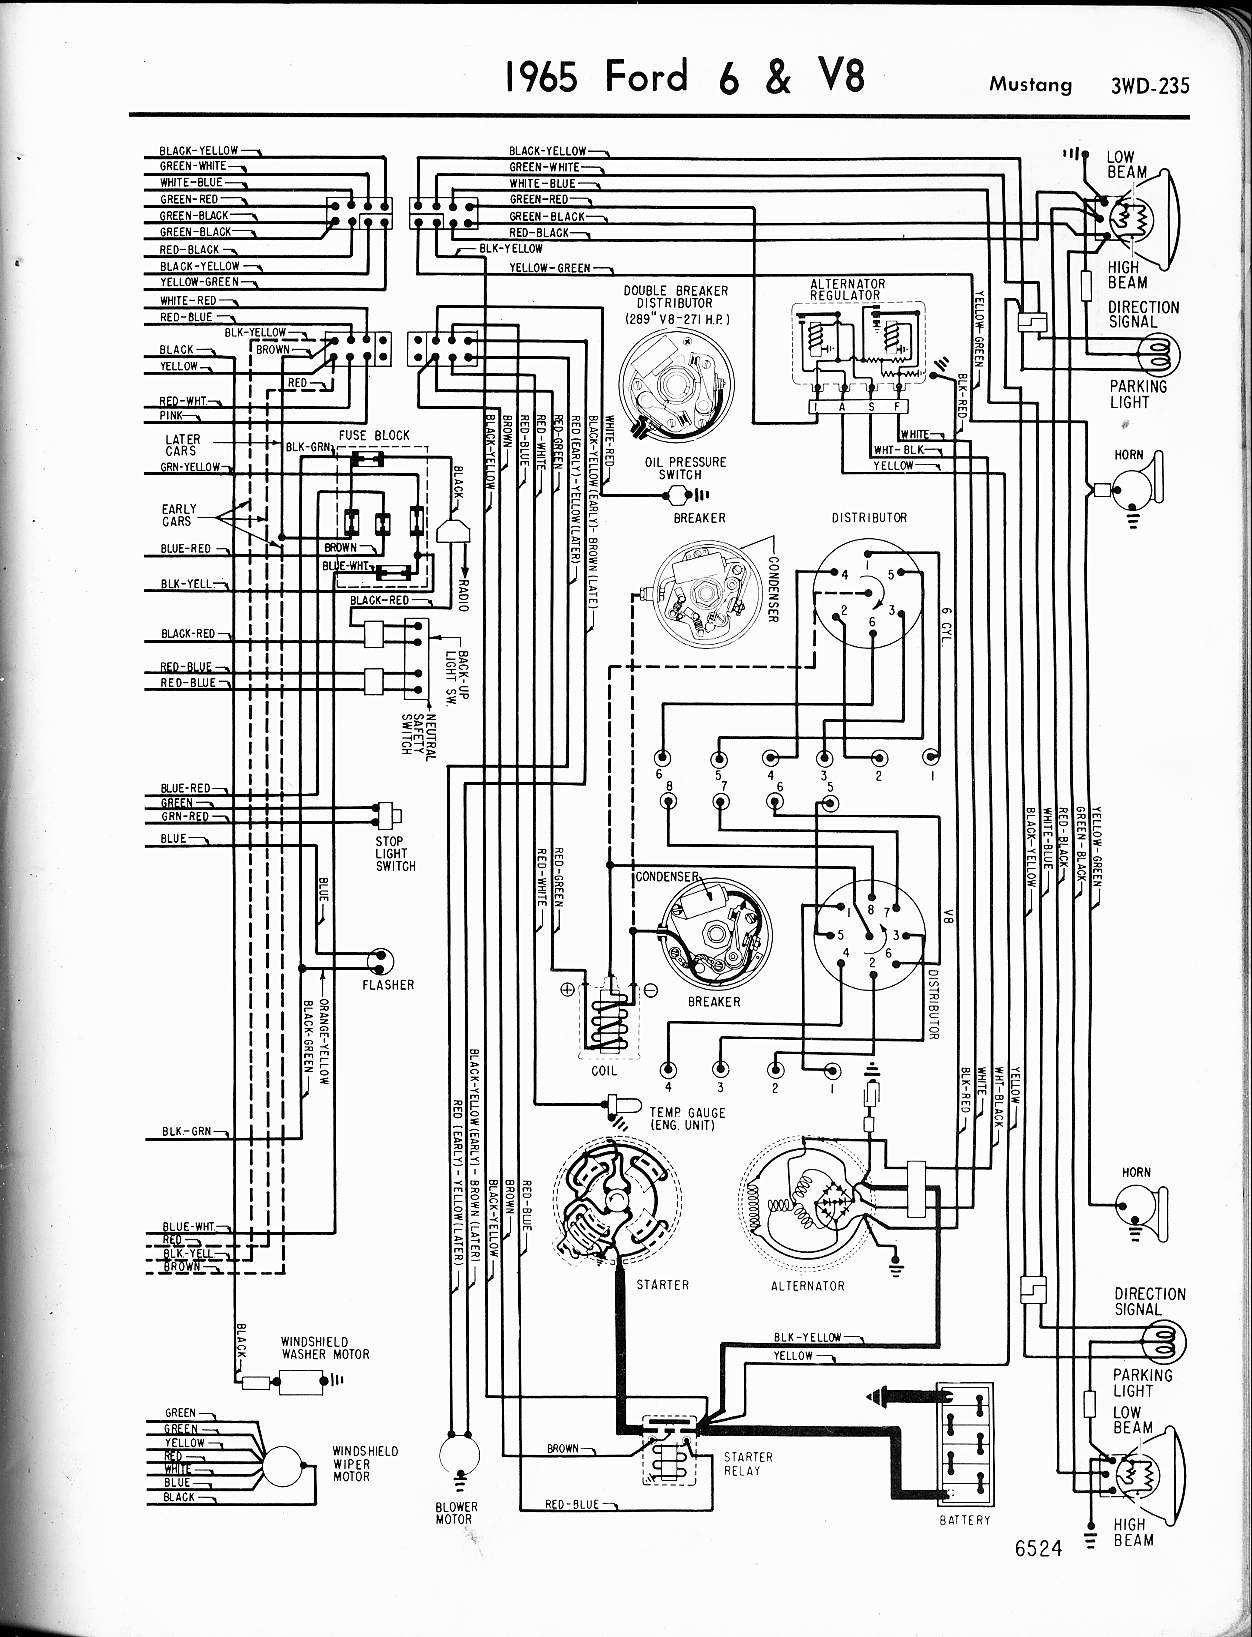 1965_mustang_wiring_2 mustang wiring schematic on mustang download wirning diagrams 67 mustang wiring diagram at bakdesigns.co